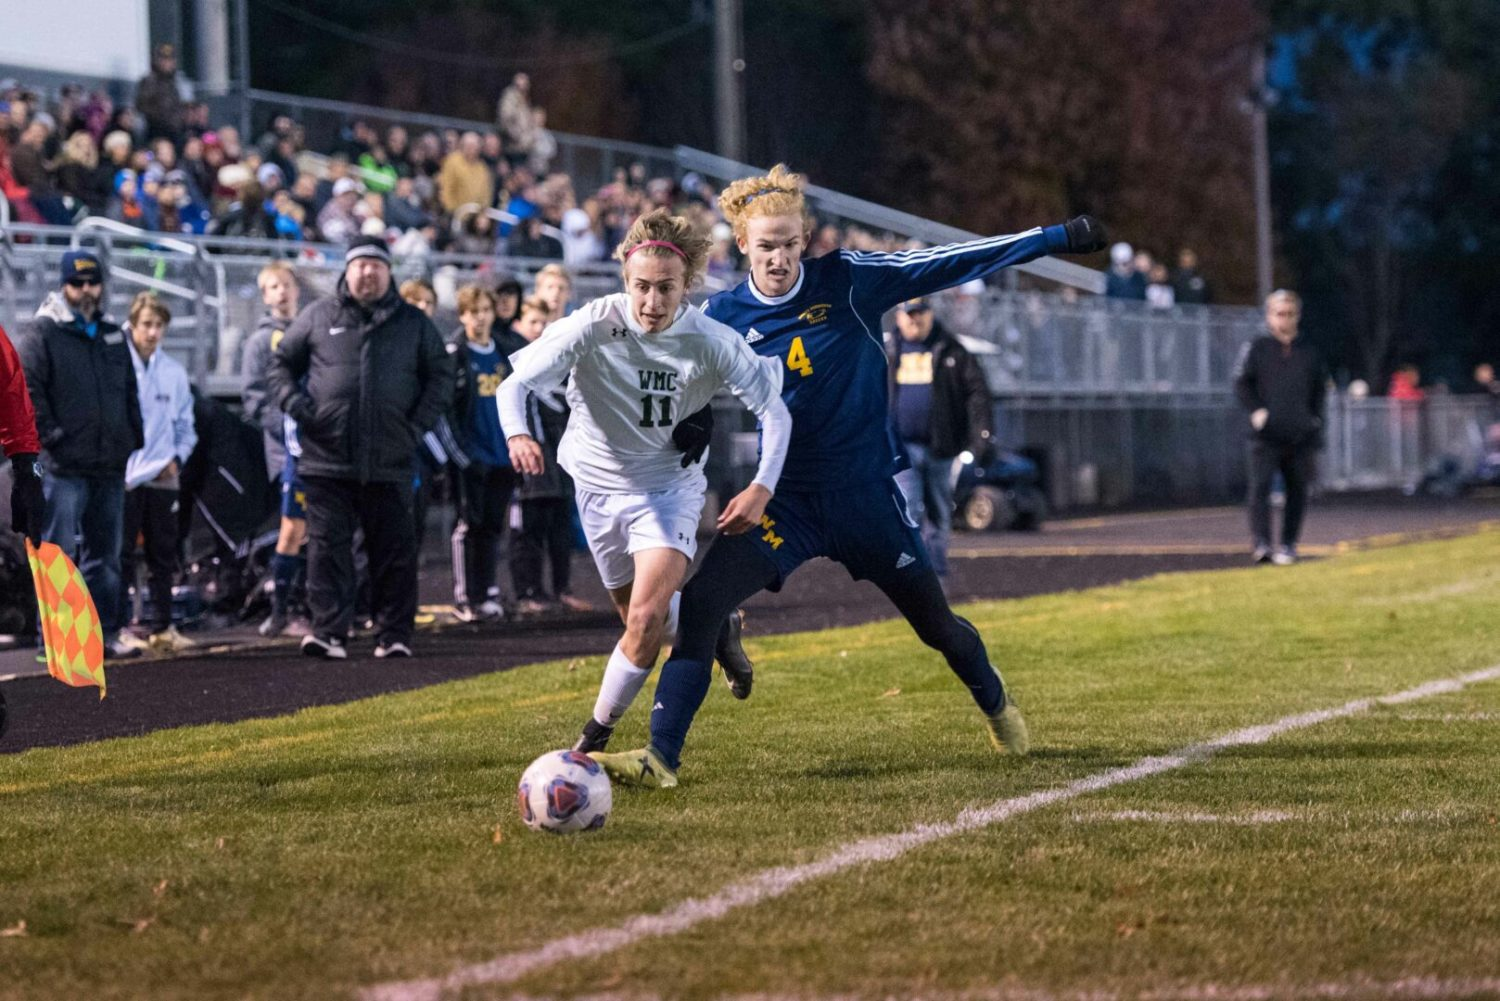 WMC soccer team looks sharp in 3-0 district semifinal win over North Muskegon